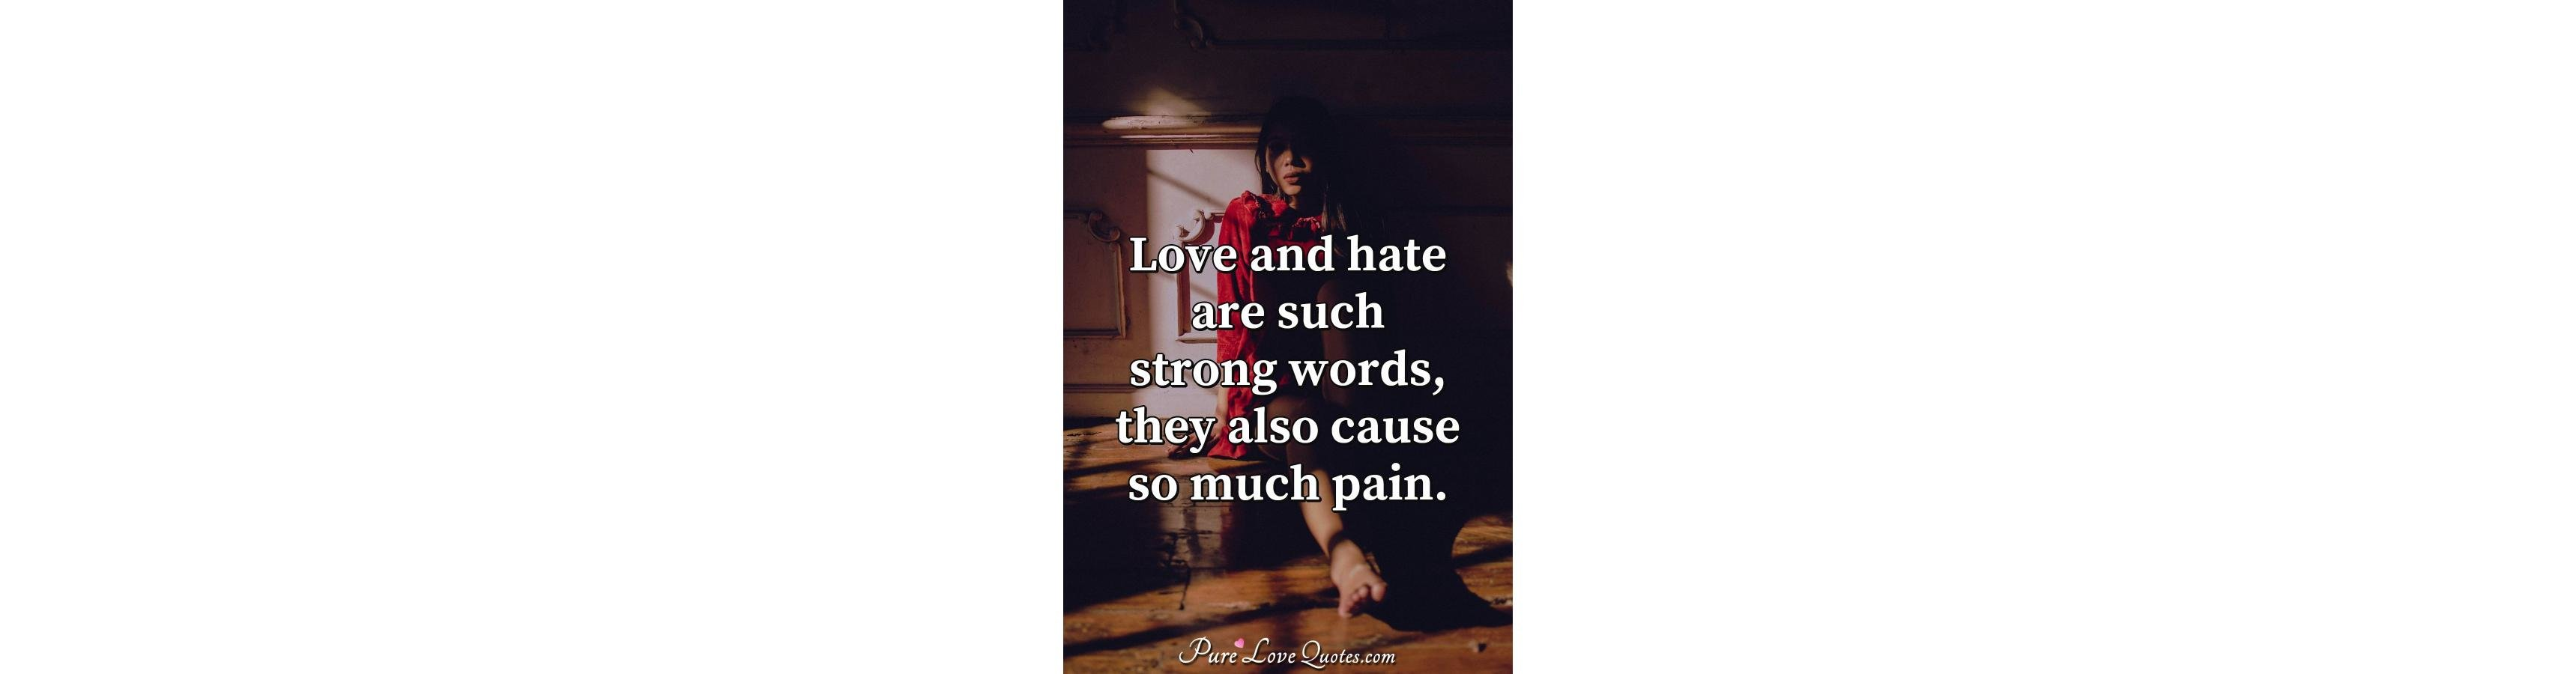 Love and hate are such strong words, they also cause so ...